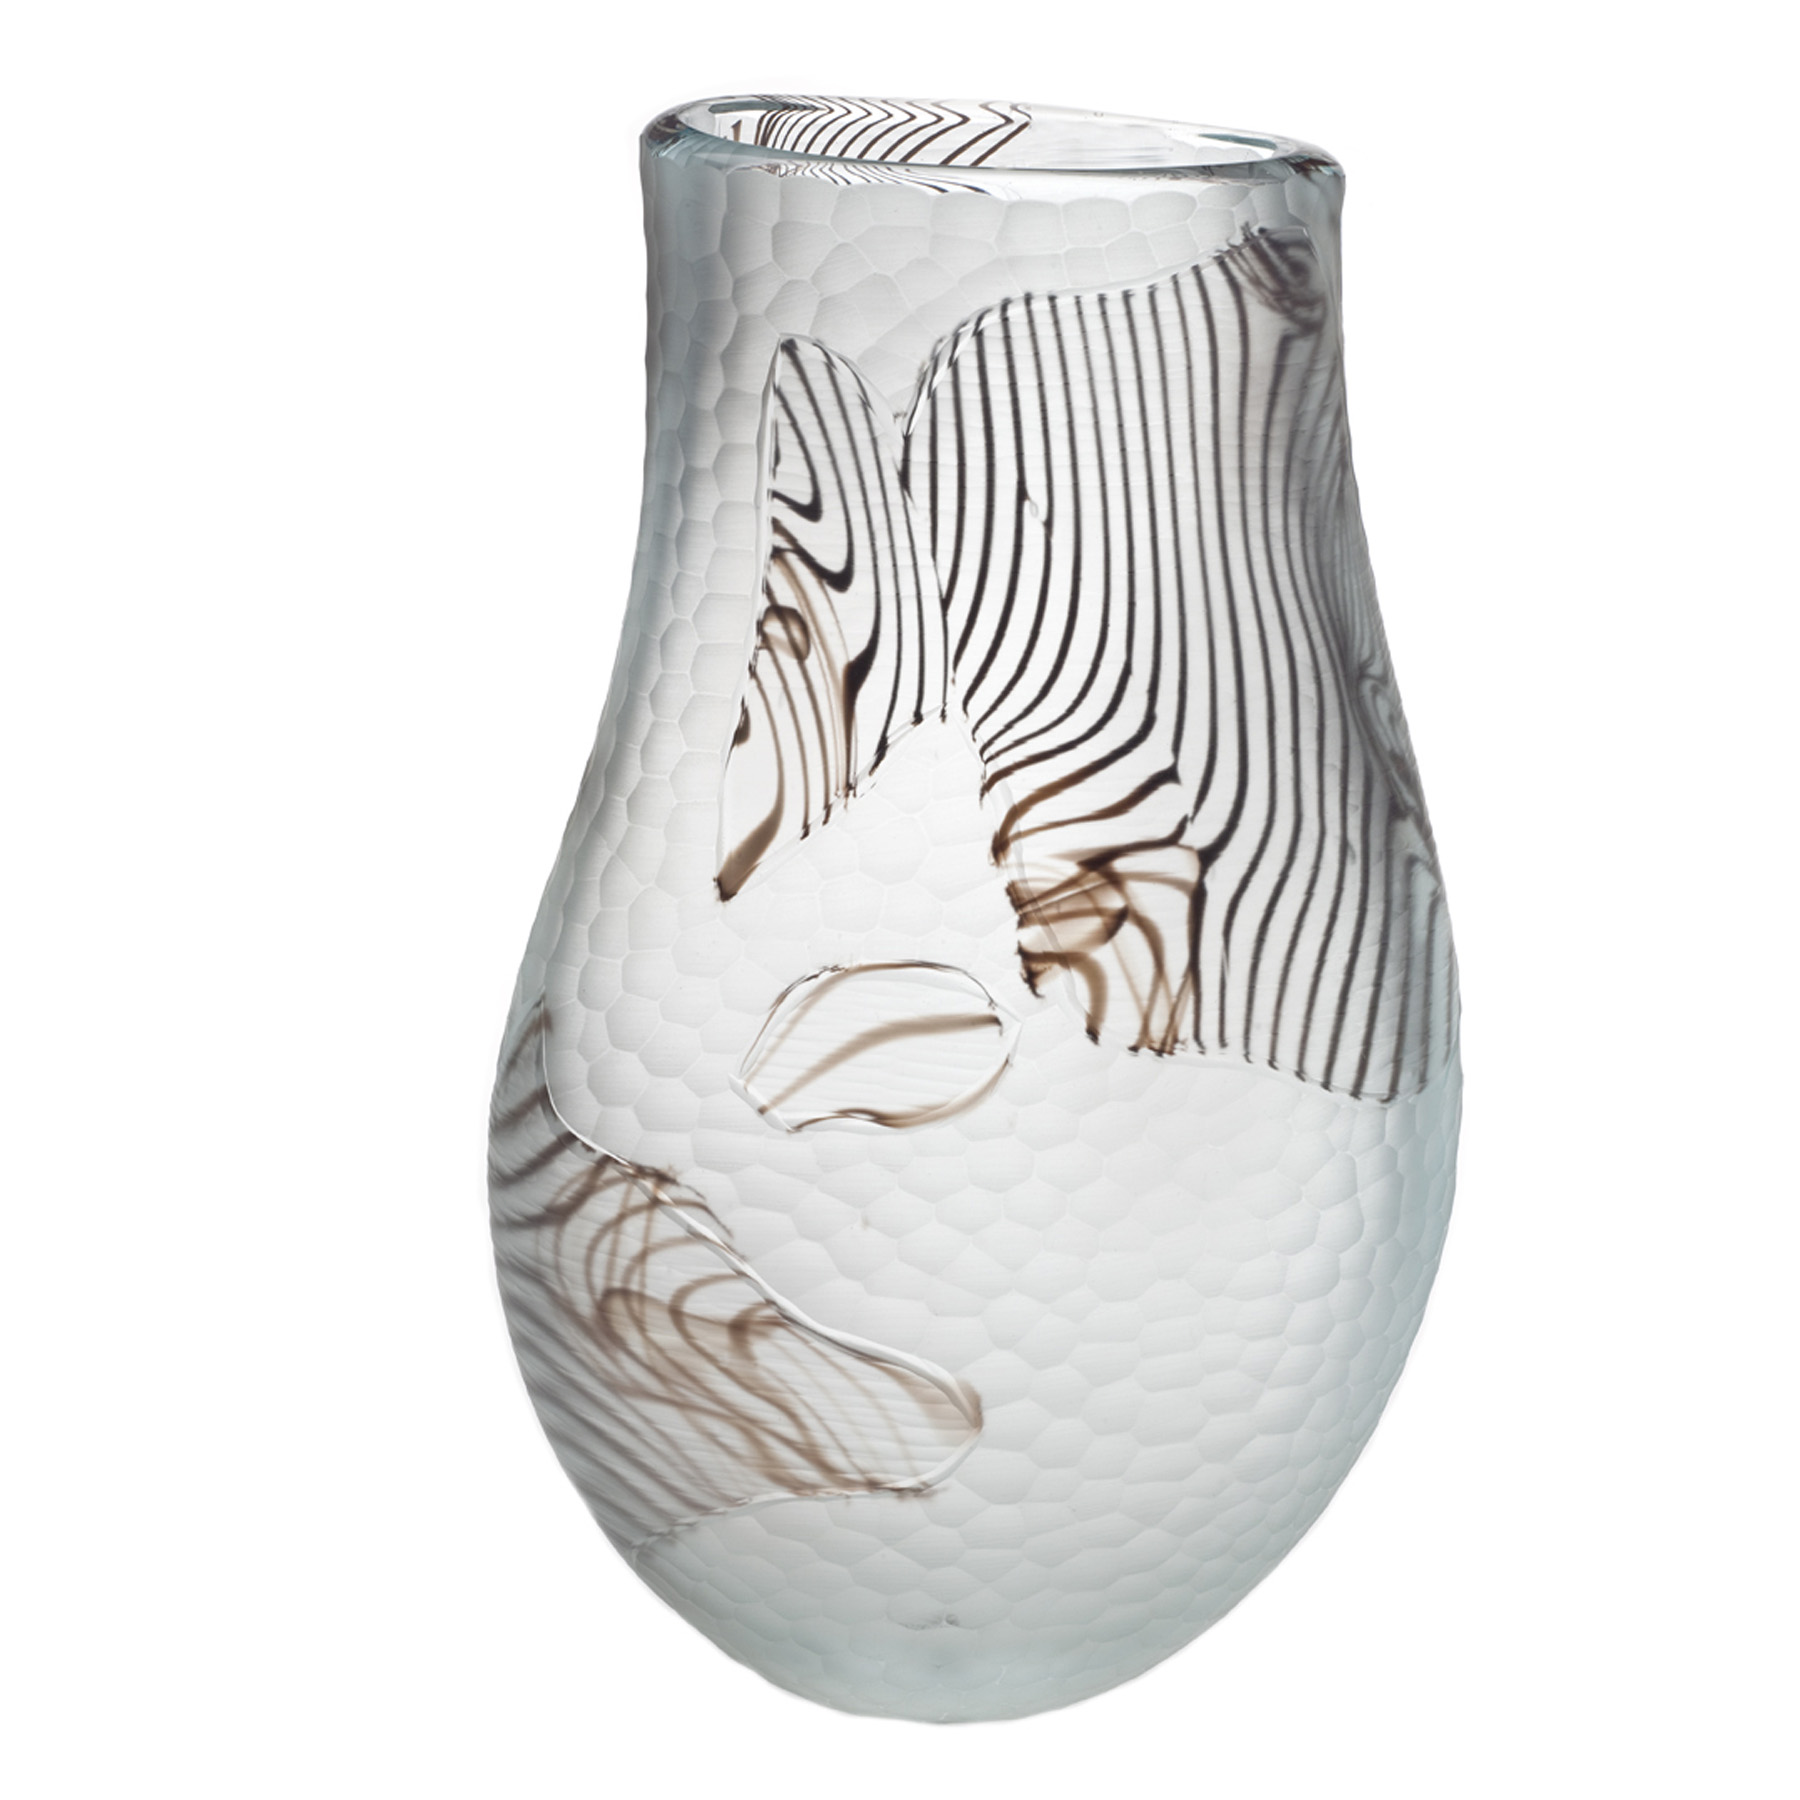 A Unique Battuto Vase Murano Italian Design Modernism